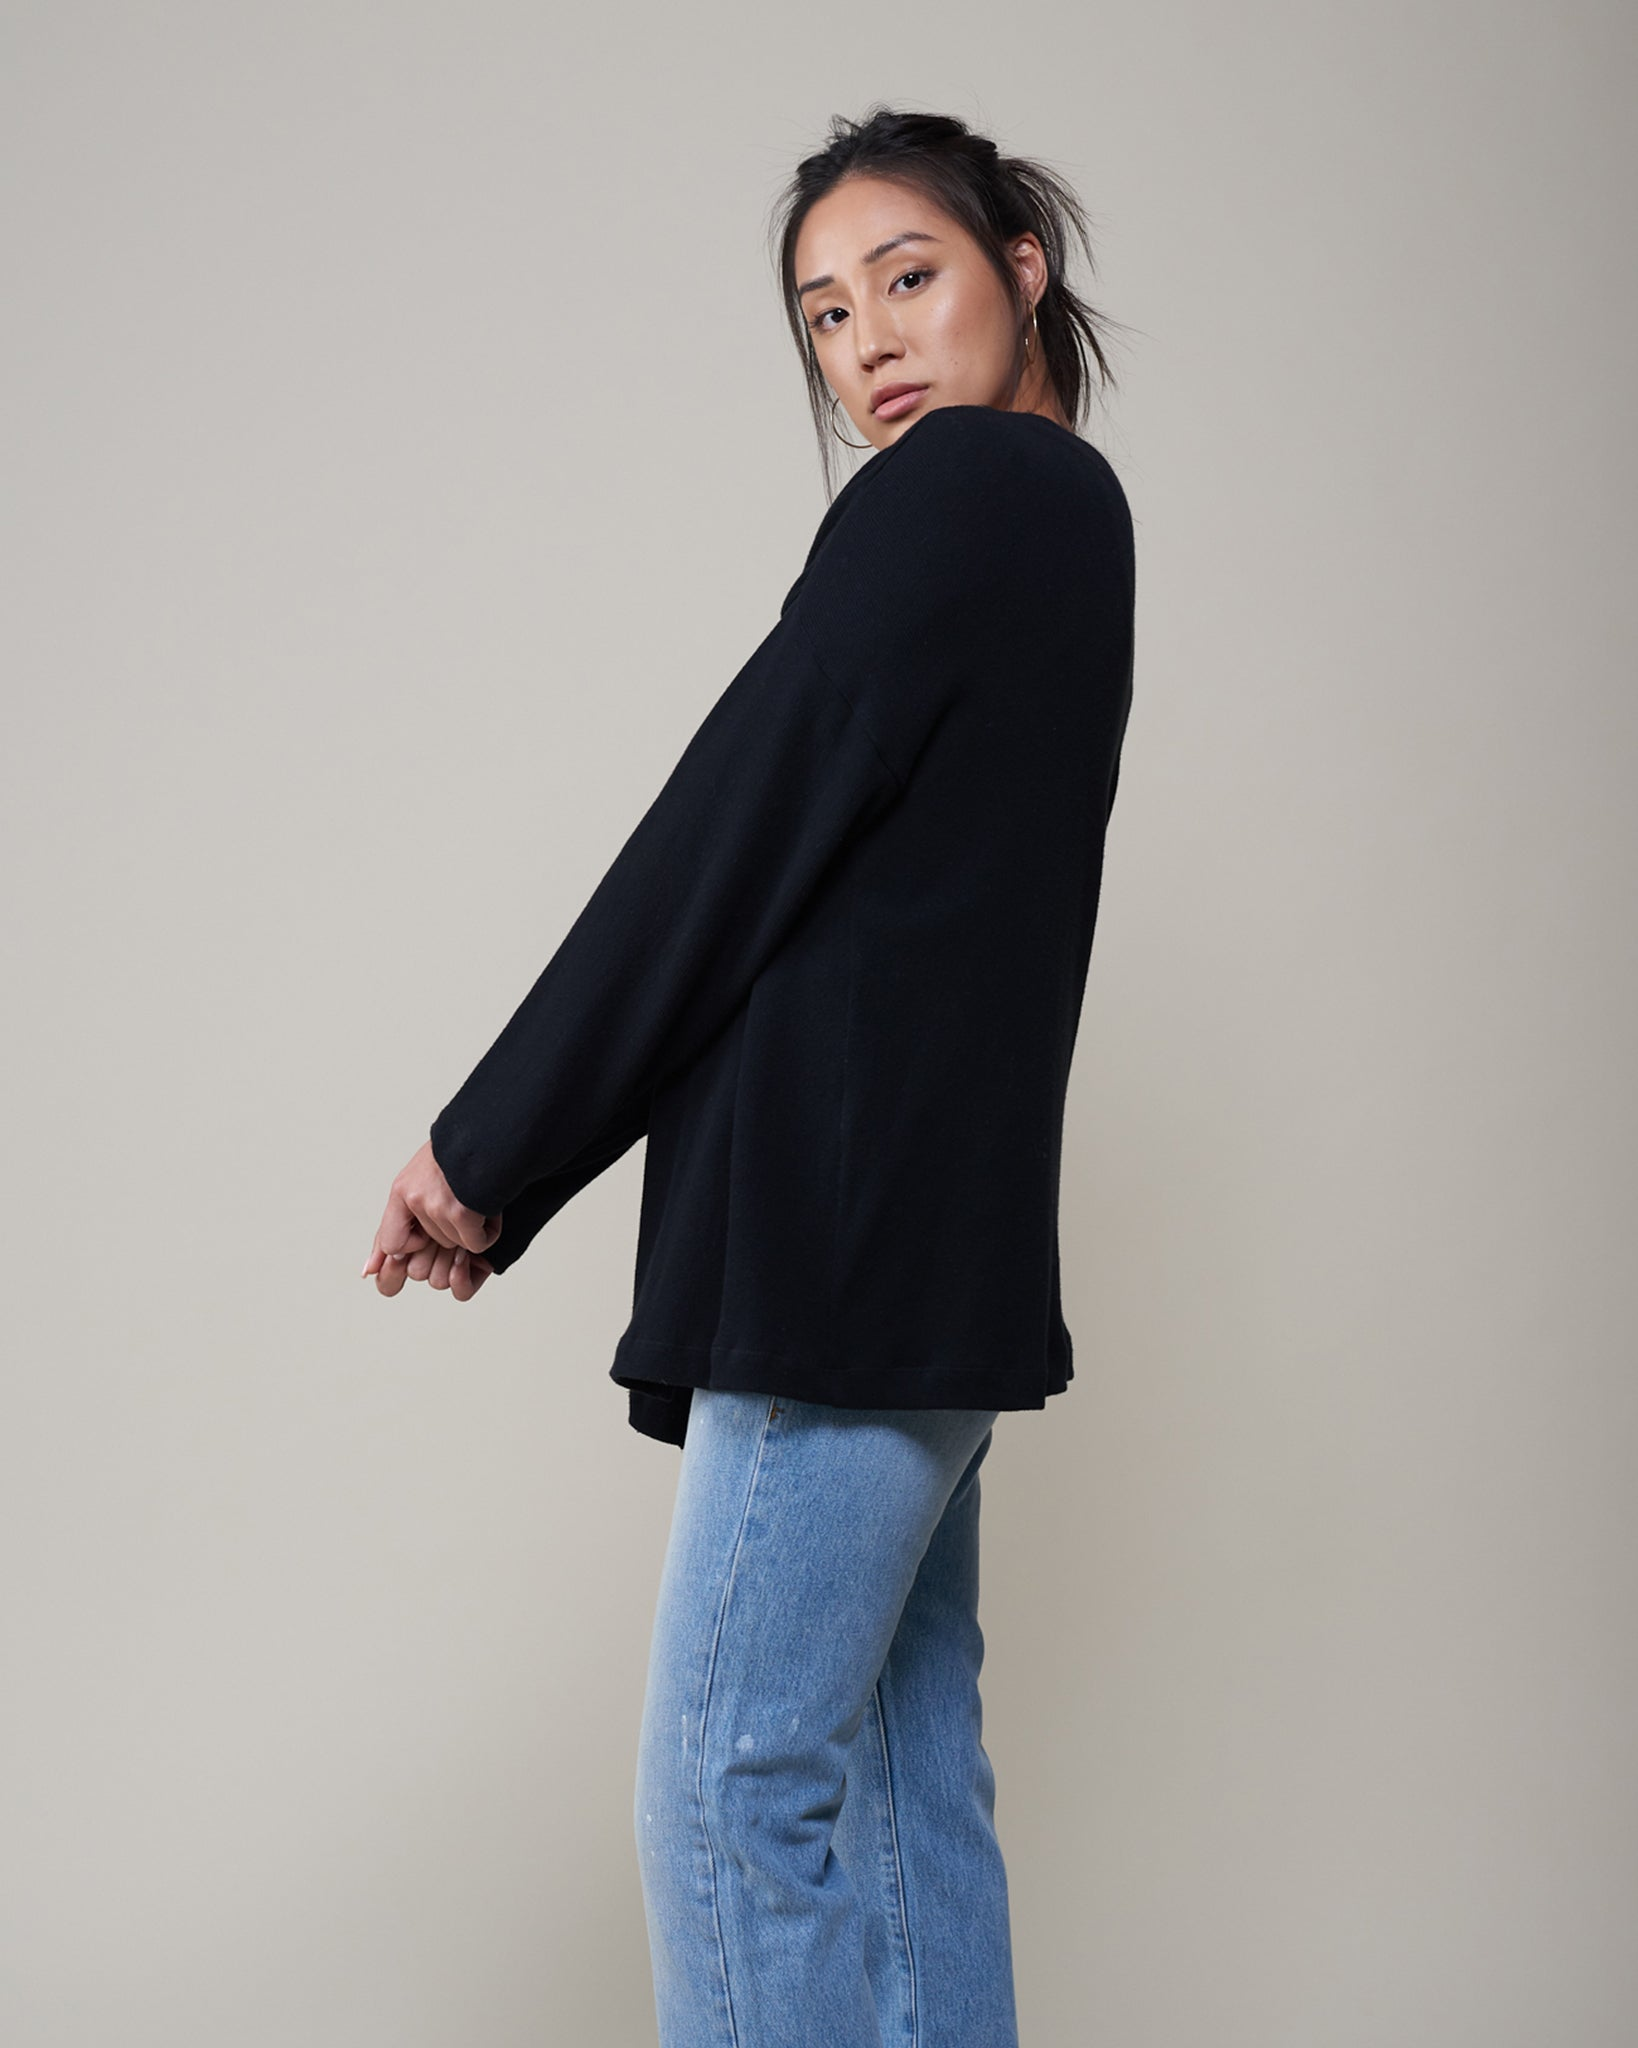 The Jordyn Cardigan